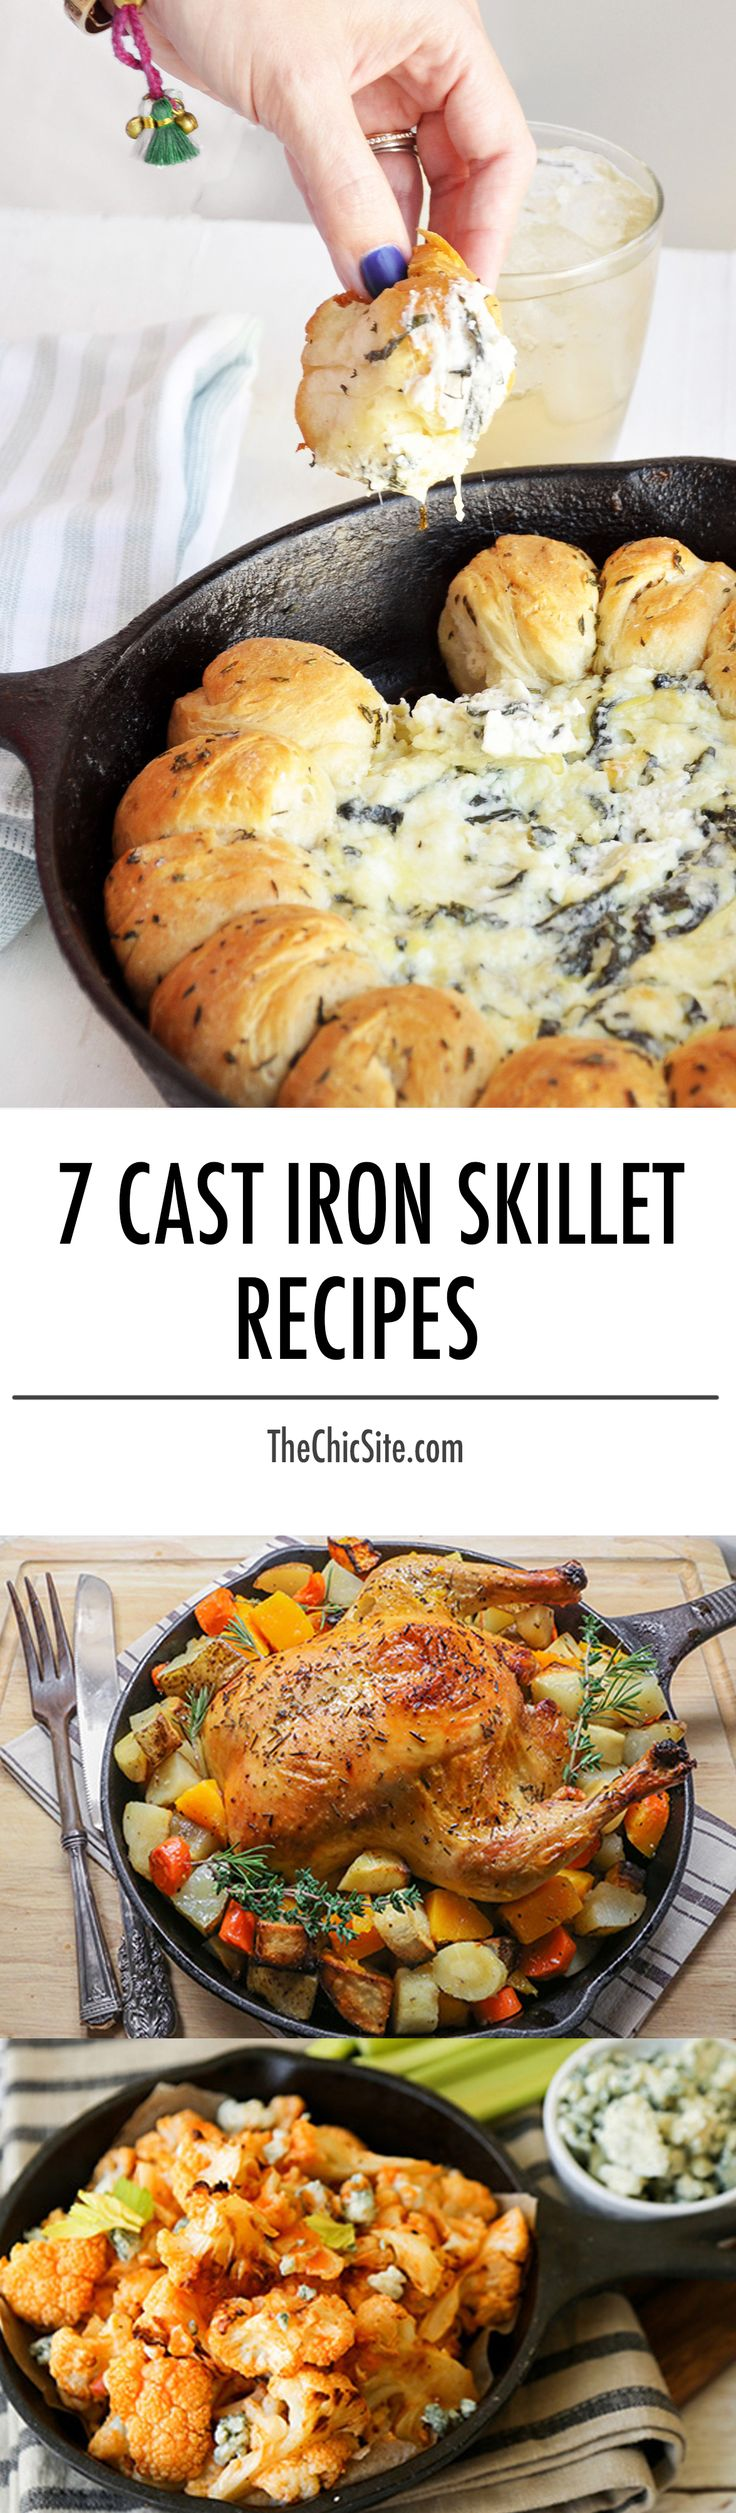 cast iron skillet recipes                                                                                                                                                                                 More